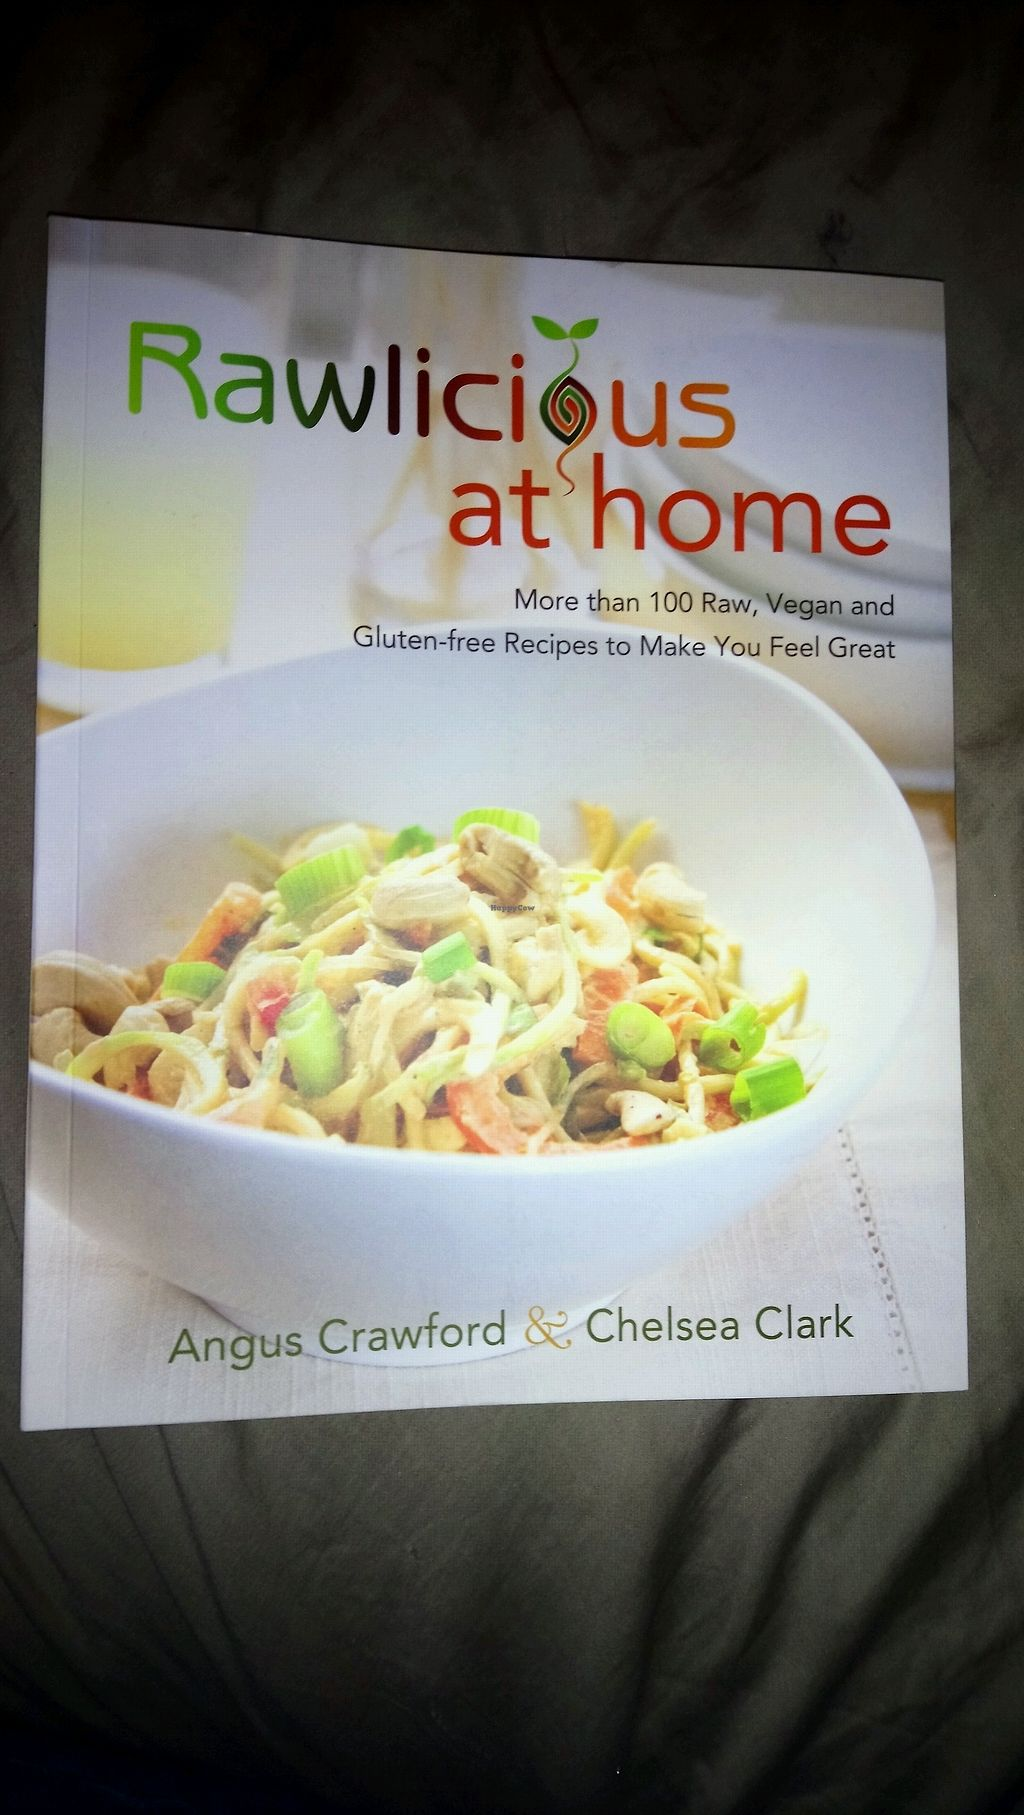 """Photo of Rawlicious  by <a href=""""/members/profile/JessicaTaylor-Keller"""">JessicaTaylor-Keller</a> <br/>Rawlicious Cook Book  <br/> October 5, 2017  - <a href='/contact/abuse/image/51867/312095'>Report</a>"""